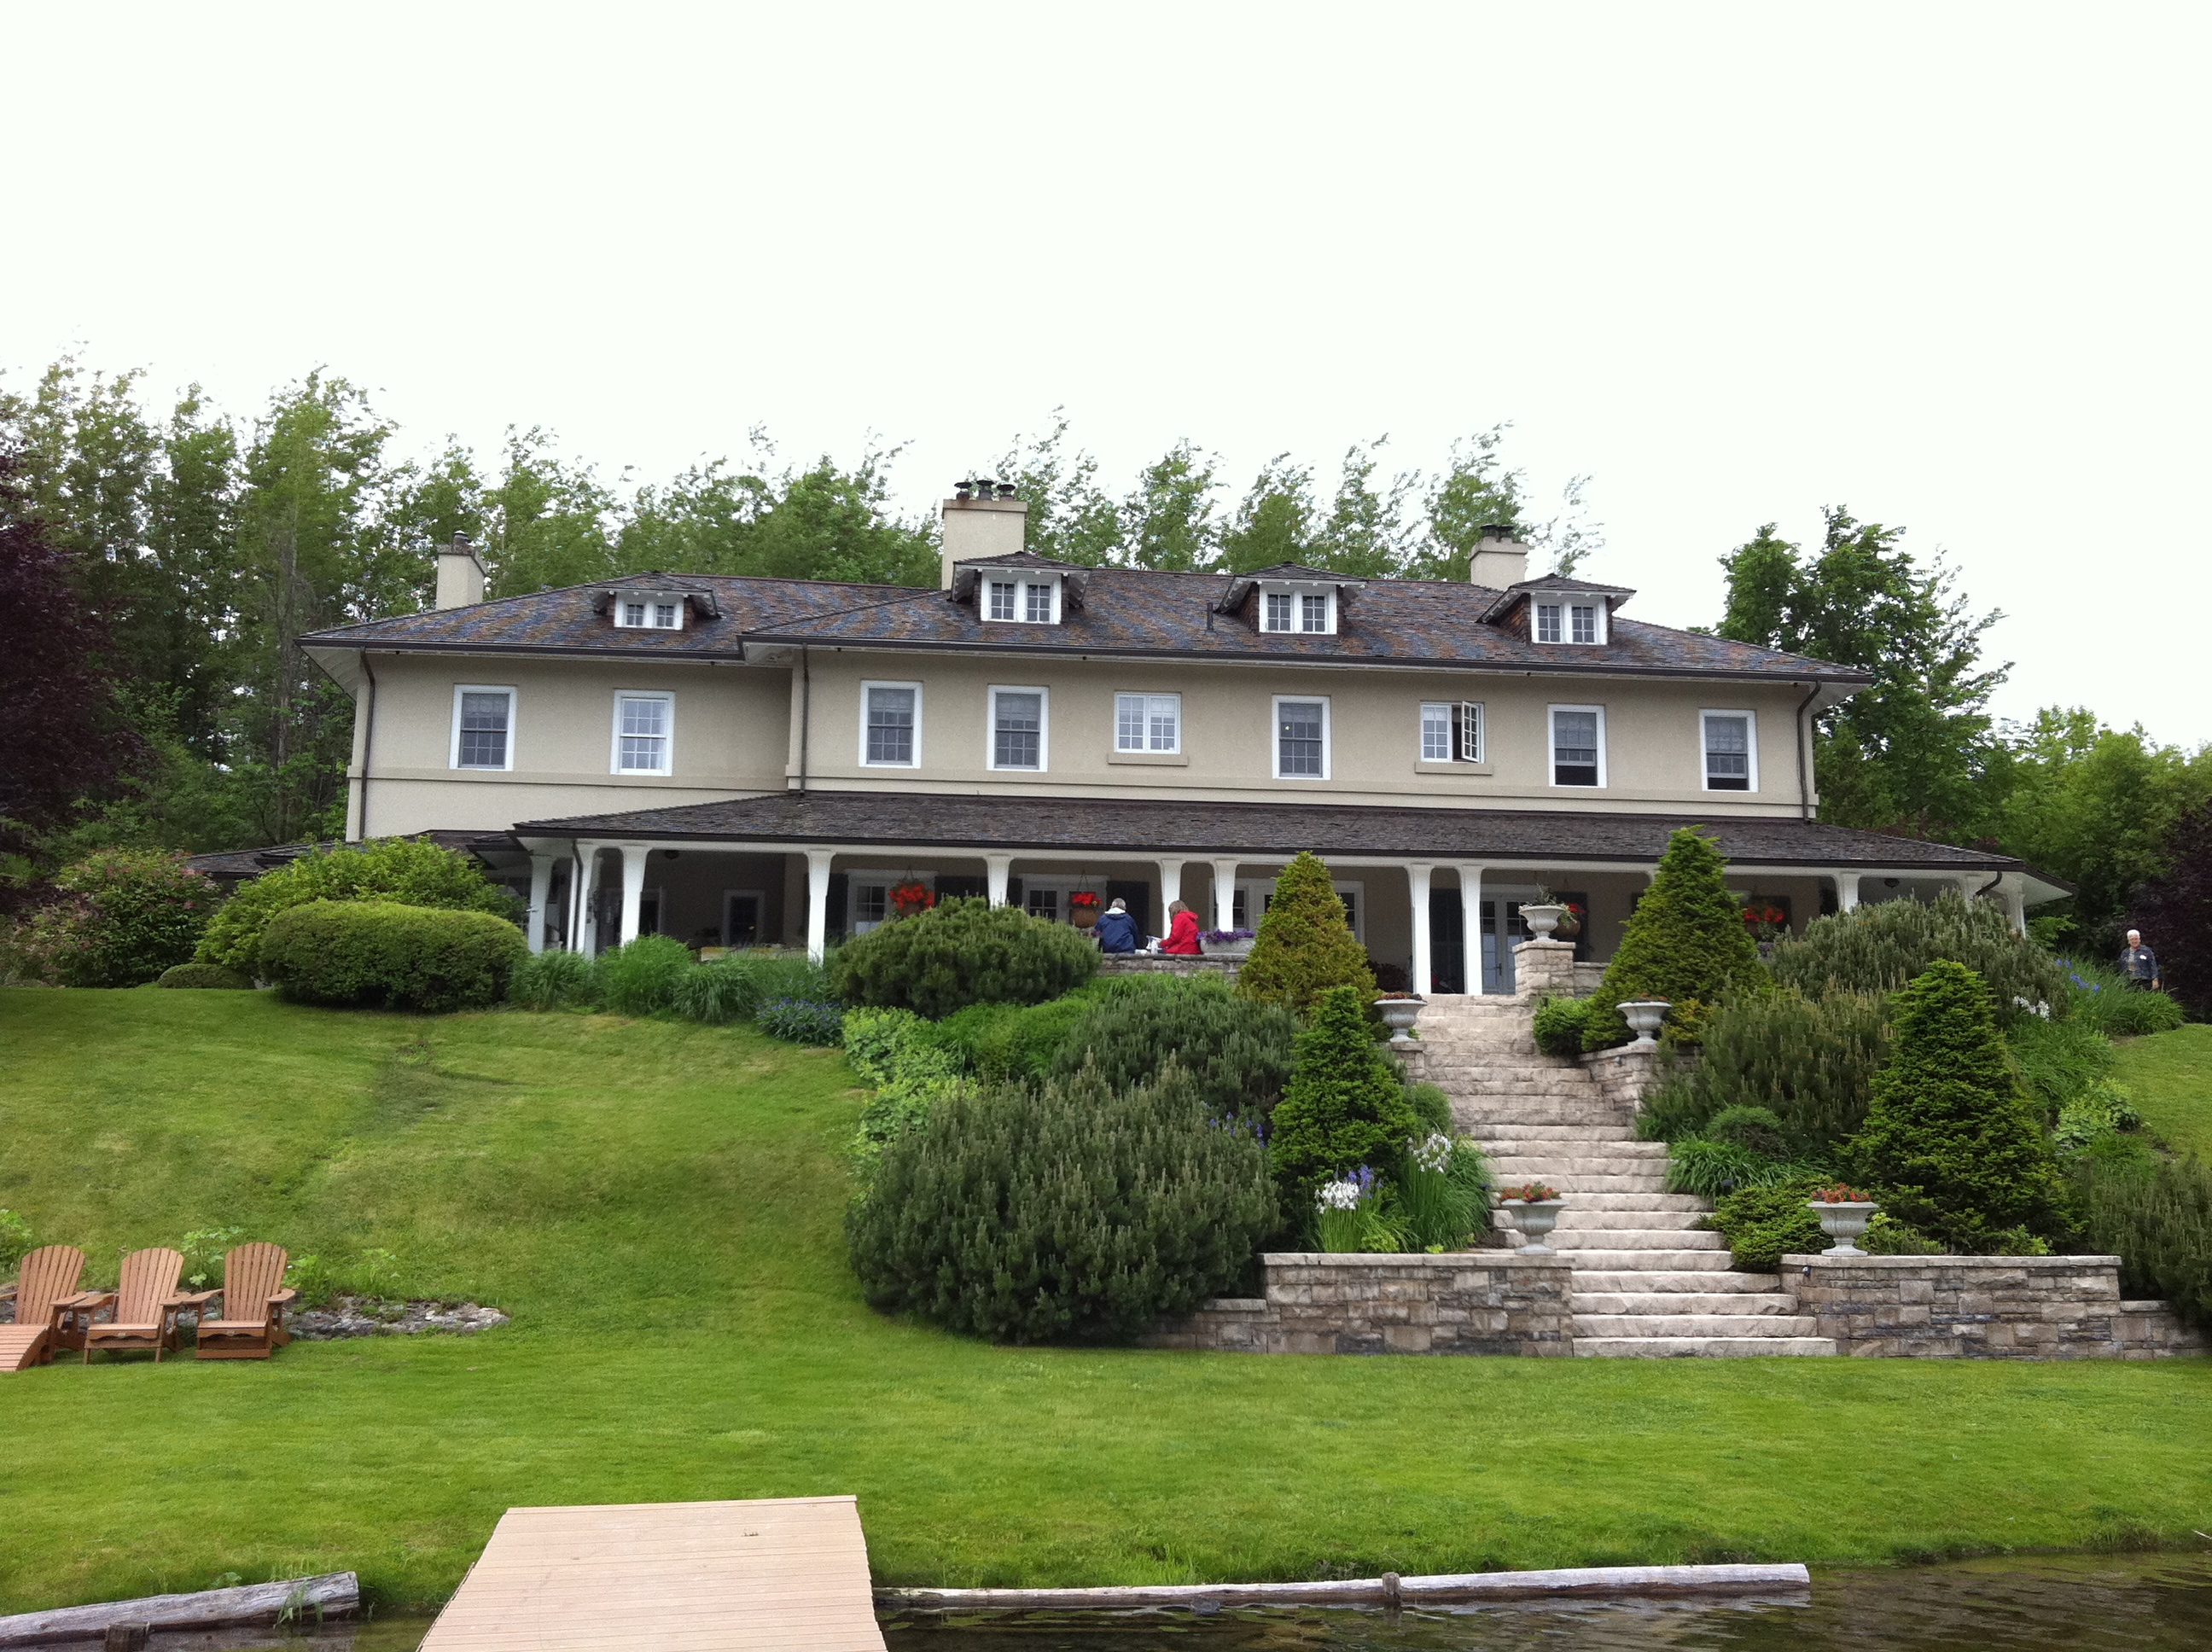 5 Reasons To Attend The Shelburne Holiday Home Tour